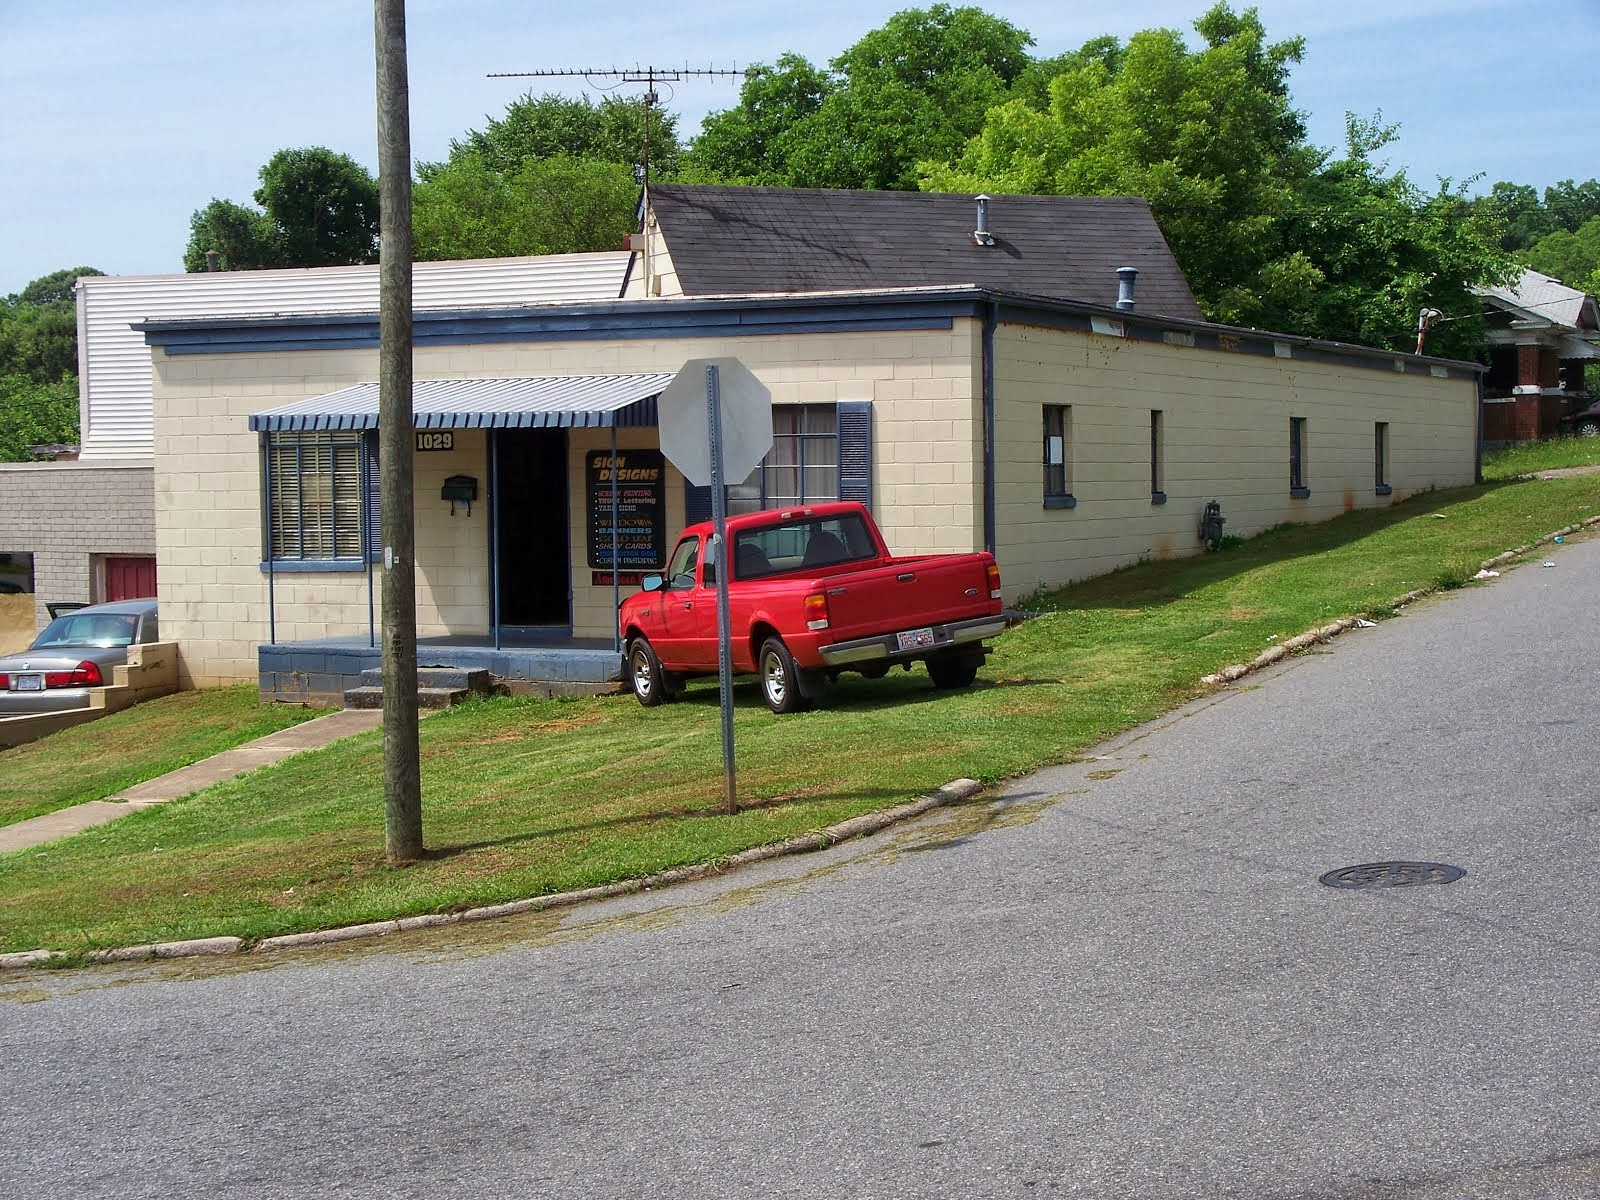 1029 OLD INNES STREET WEST Salisbury, NC ~ Commercial ~ $89,900